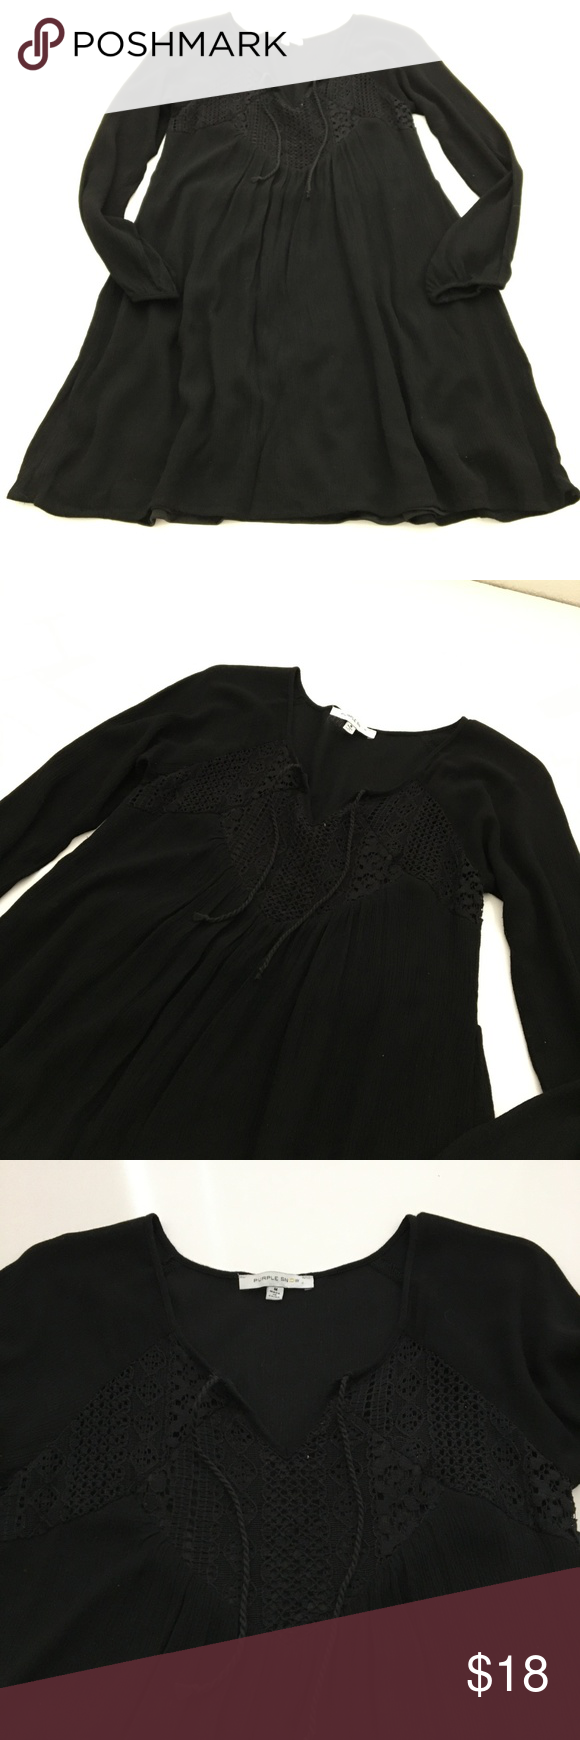 Purple Snow Black Gauze Long Sleeve Boho Mini Purple Snow black gauze and lace long sleeve mini dress. Lined, skirt with tie at neck. Size Medium.  All measurements are approximate and taken from flat lay. Material: Outer 100% Rayon, Liner 100% Polyester Pit to pit: 15